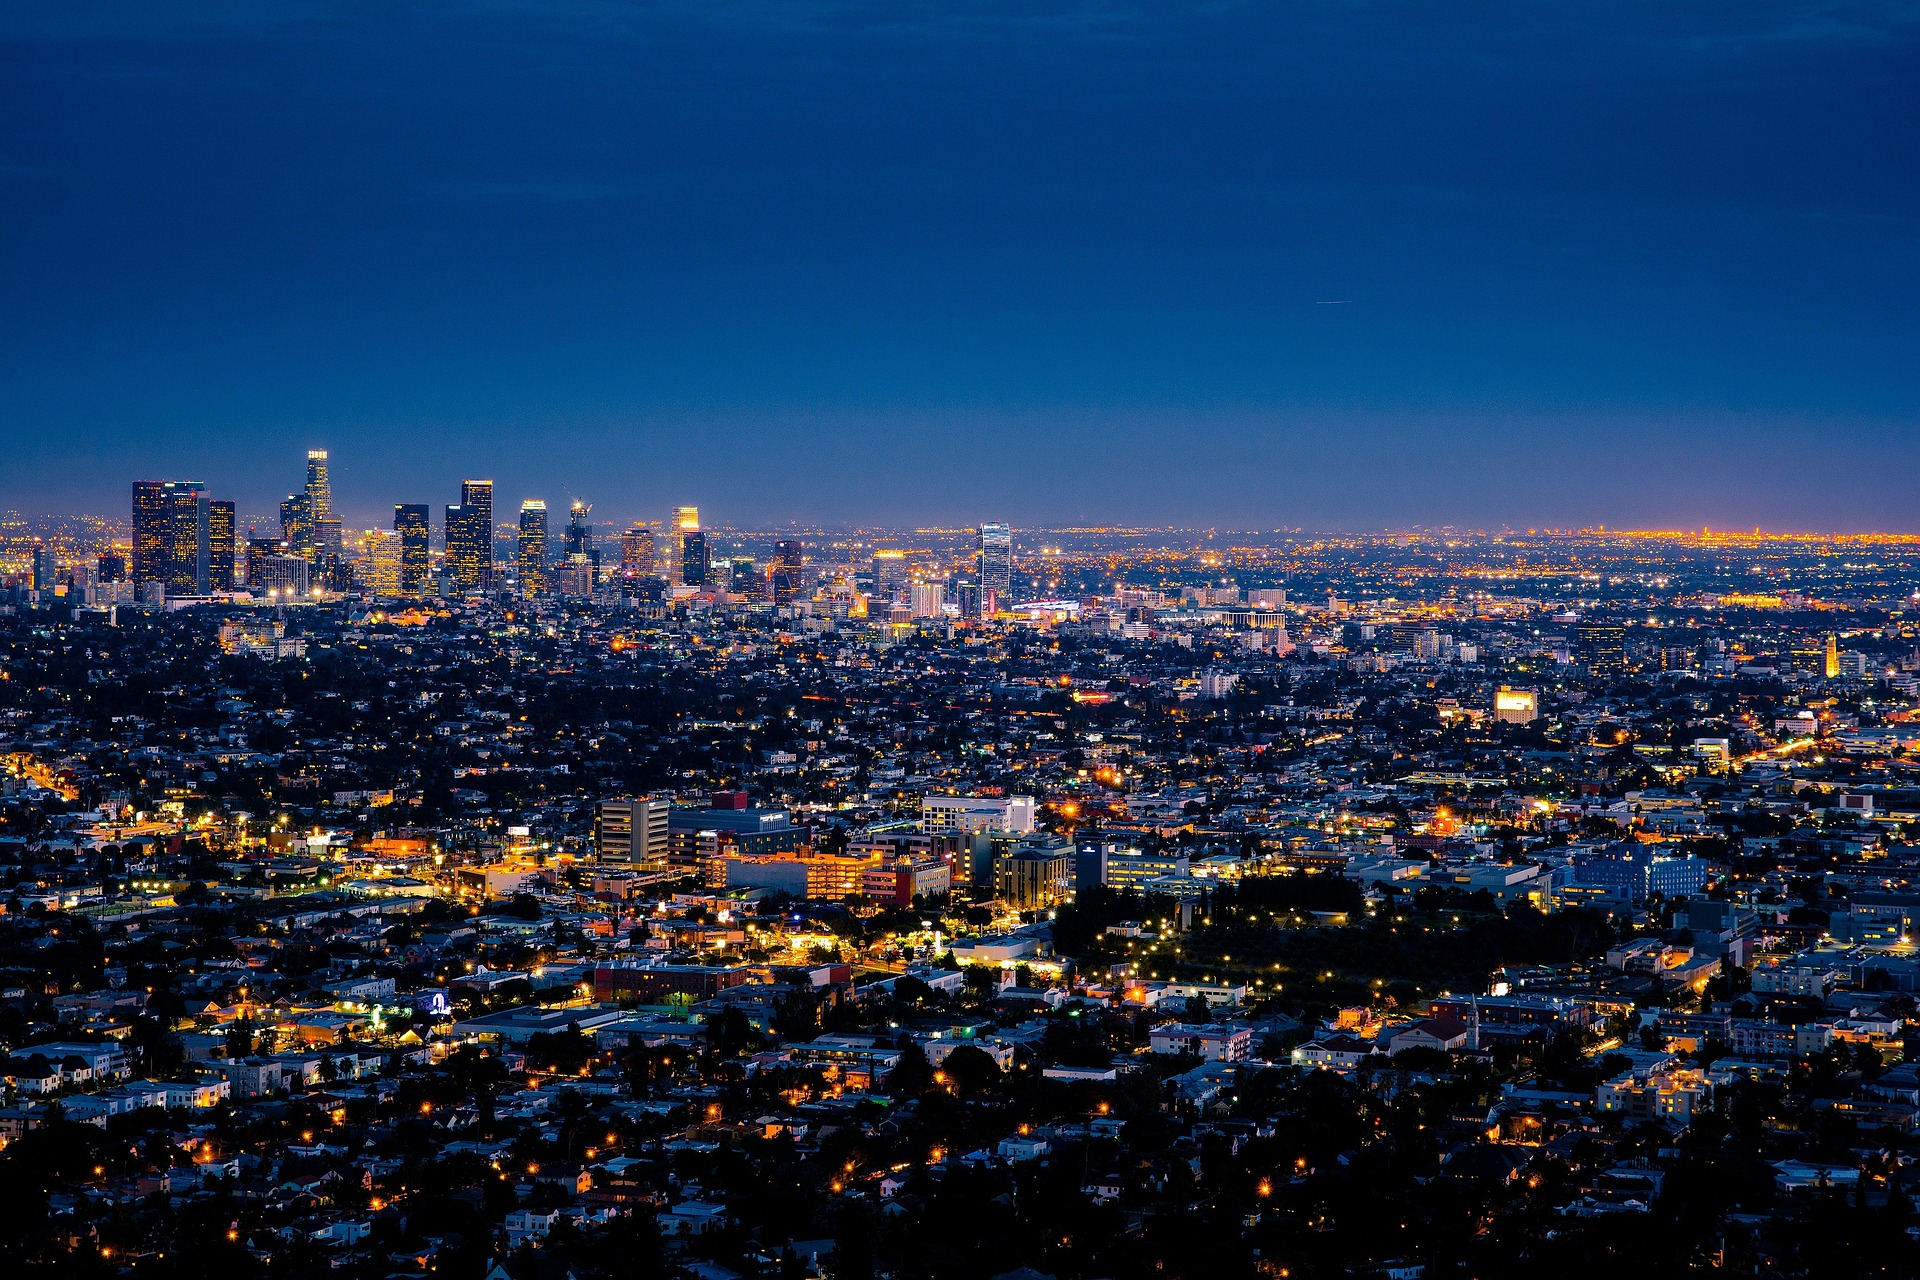 Los Angeles, California at night